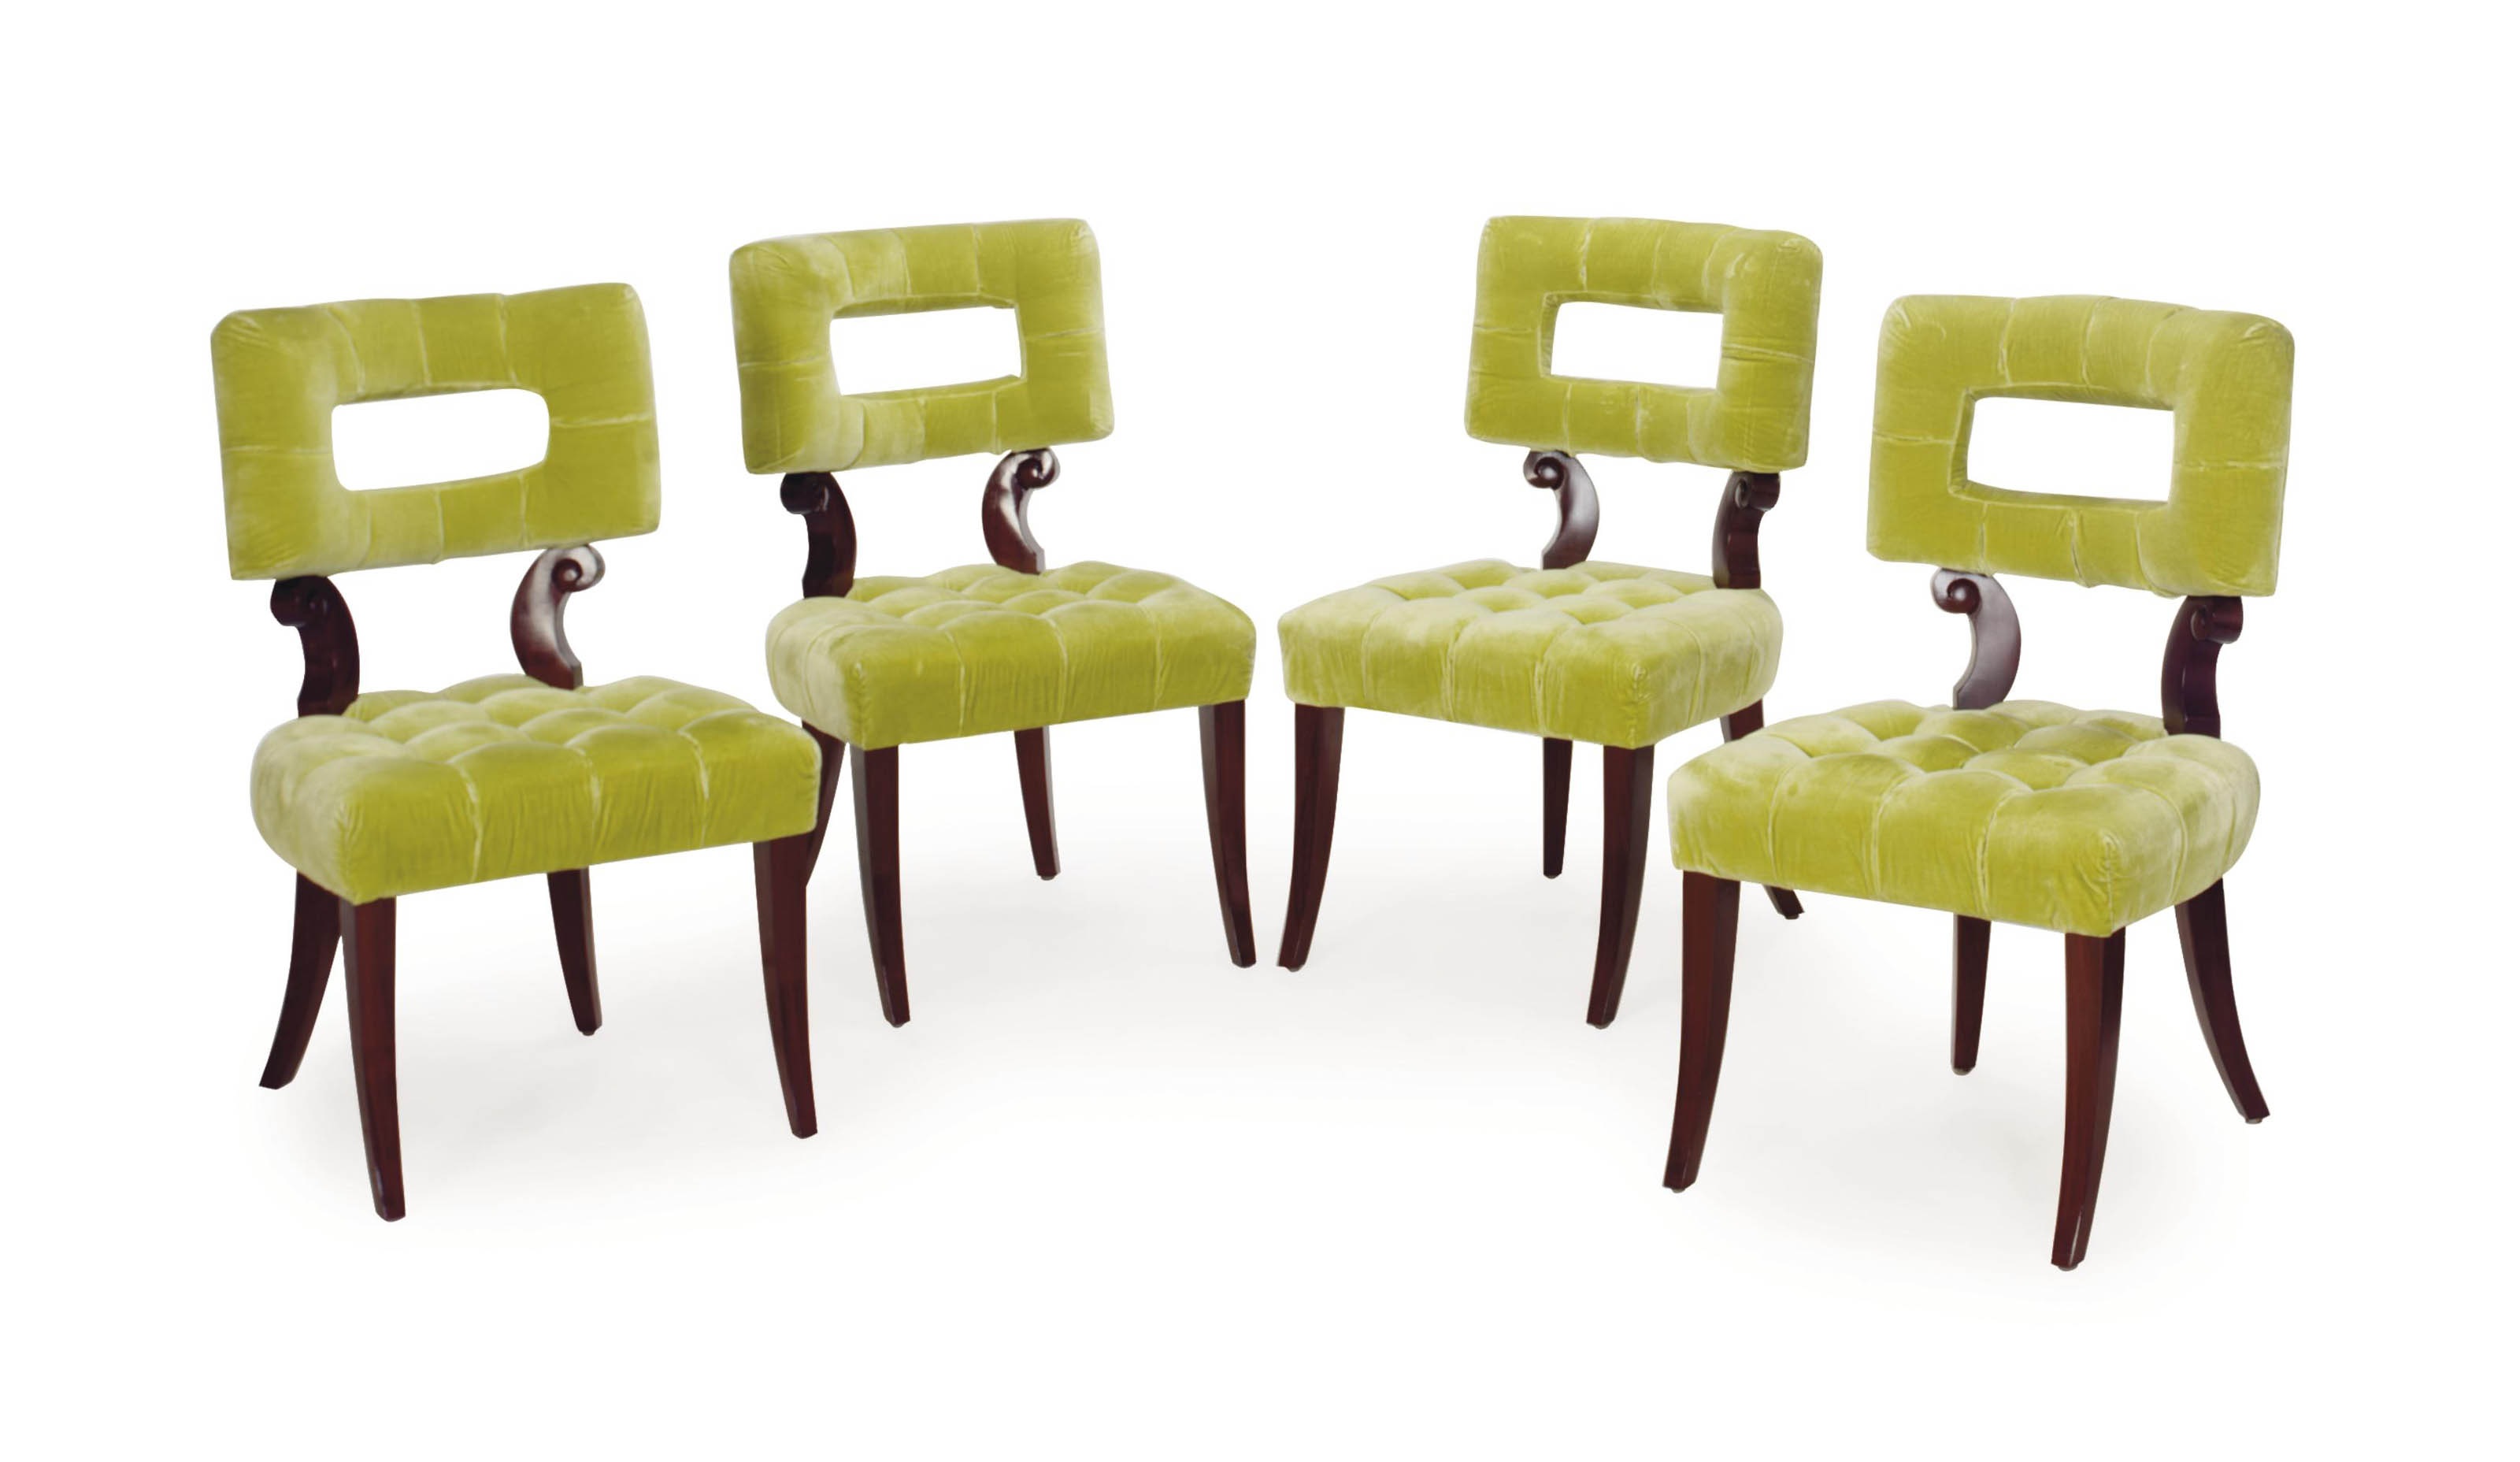 Lime Green Chair A Set Of Ten Mahogany And Lime Green Velvet Upholstered